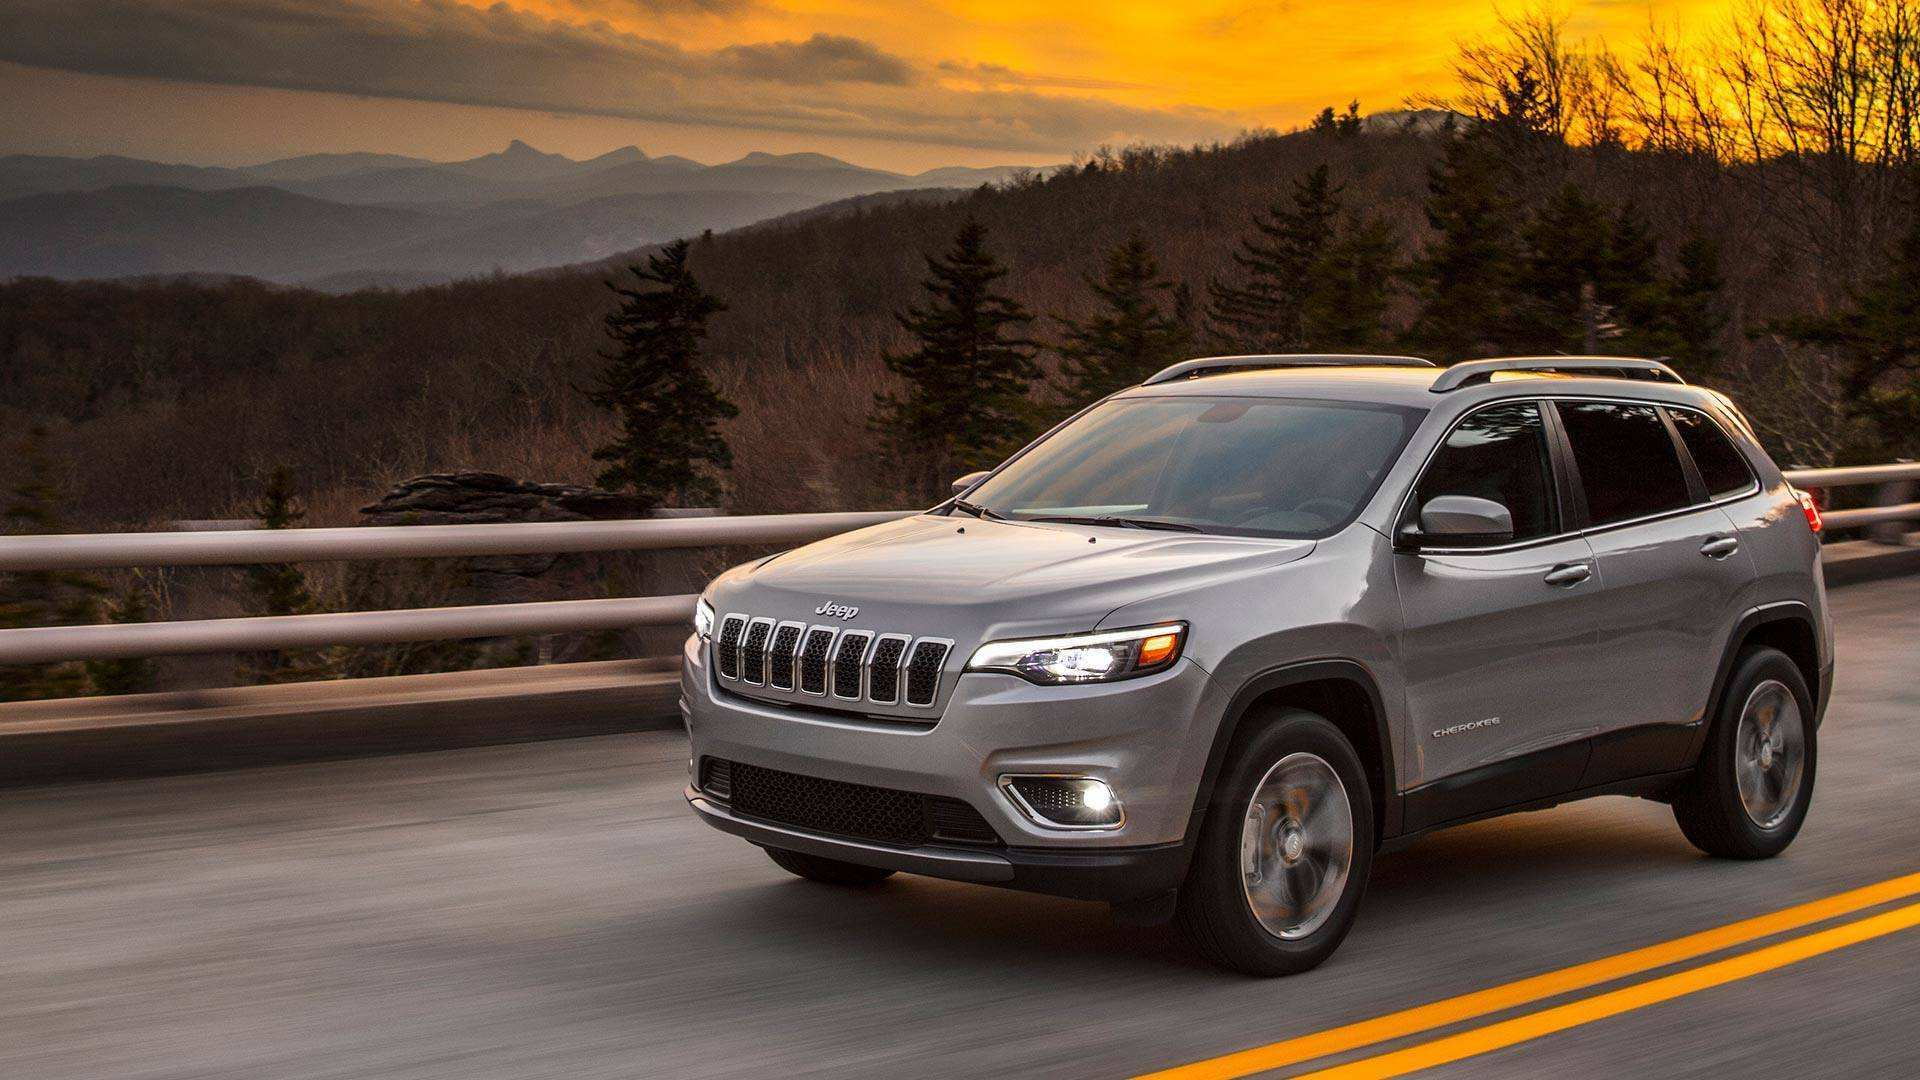 75 Gallery of New 2019 Jeep Cherokee Horsepower Release Specs And Review Specs by New 2019 Jeep Cherokee Horsepower Release Specs And Review